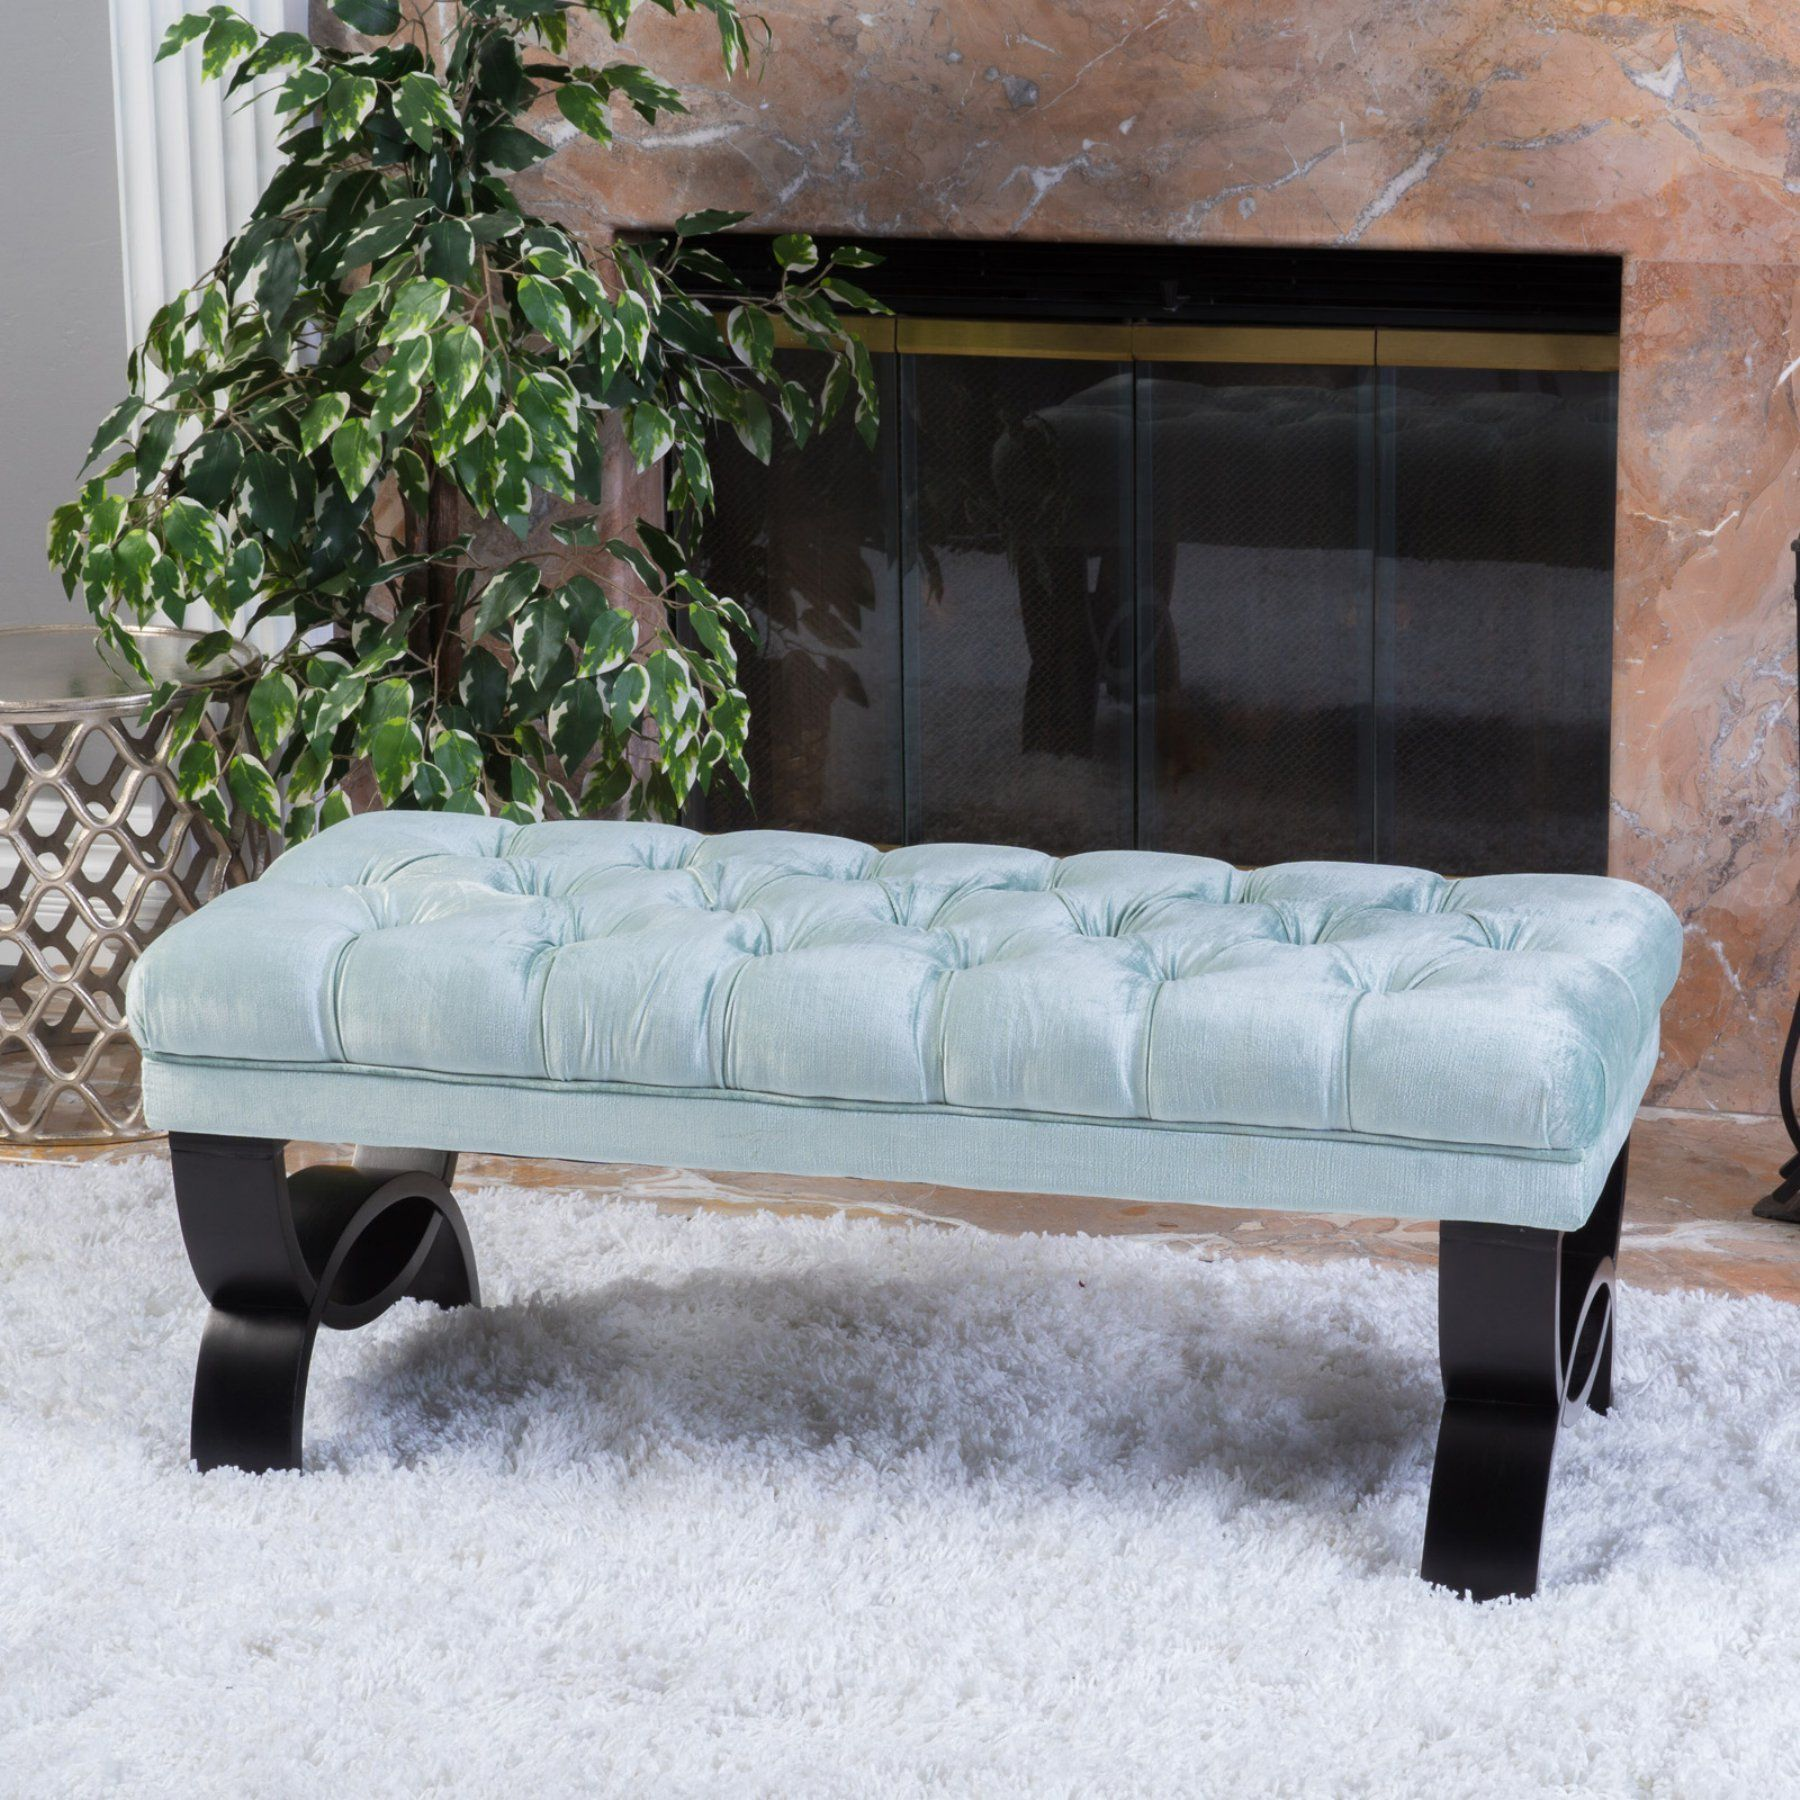 Best selling home umber ottoman bench ottoman bench